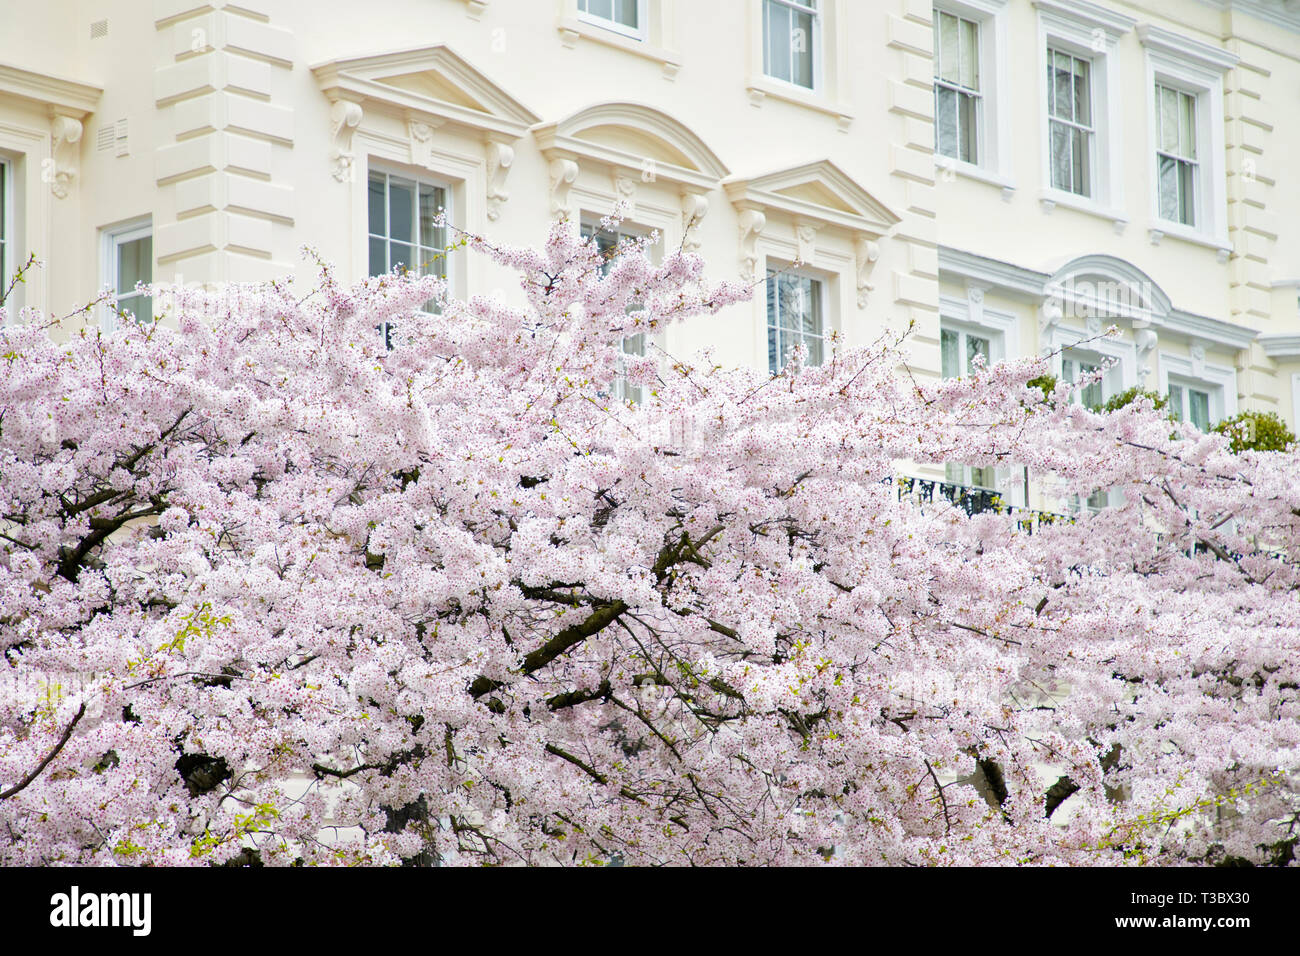 LONDON, UK - MARCH 27th, 2019:Cherry tree is blooming outside elegant building in Central London. Notting Hill area  is full of  colorful houses and b - Stock Image